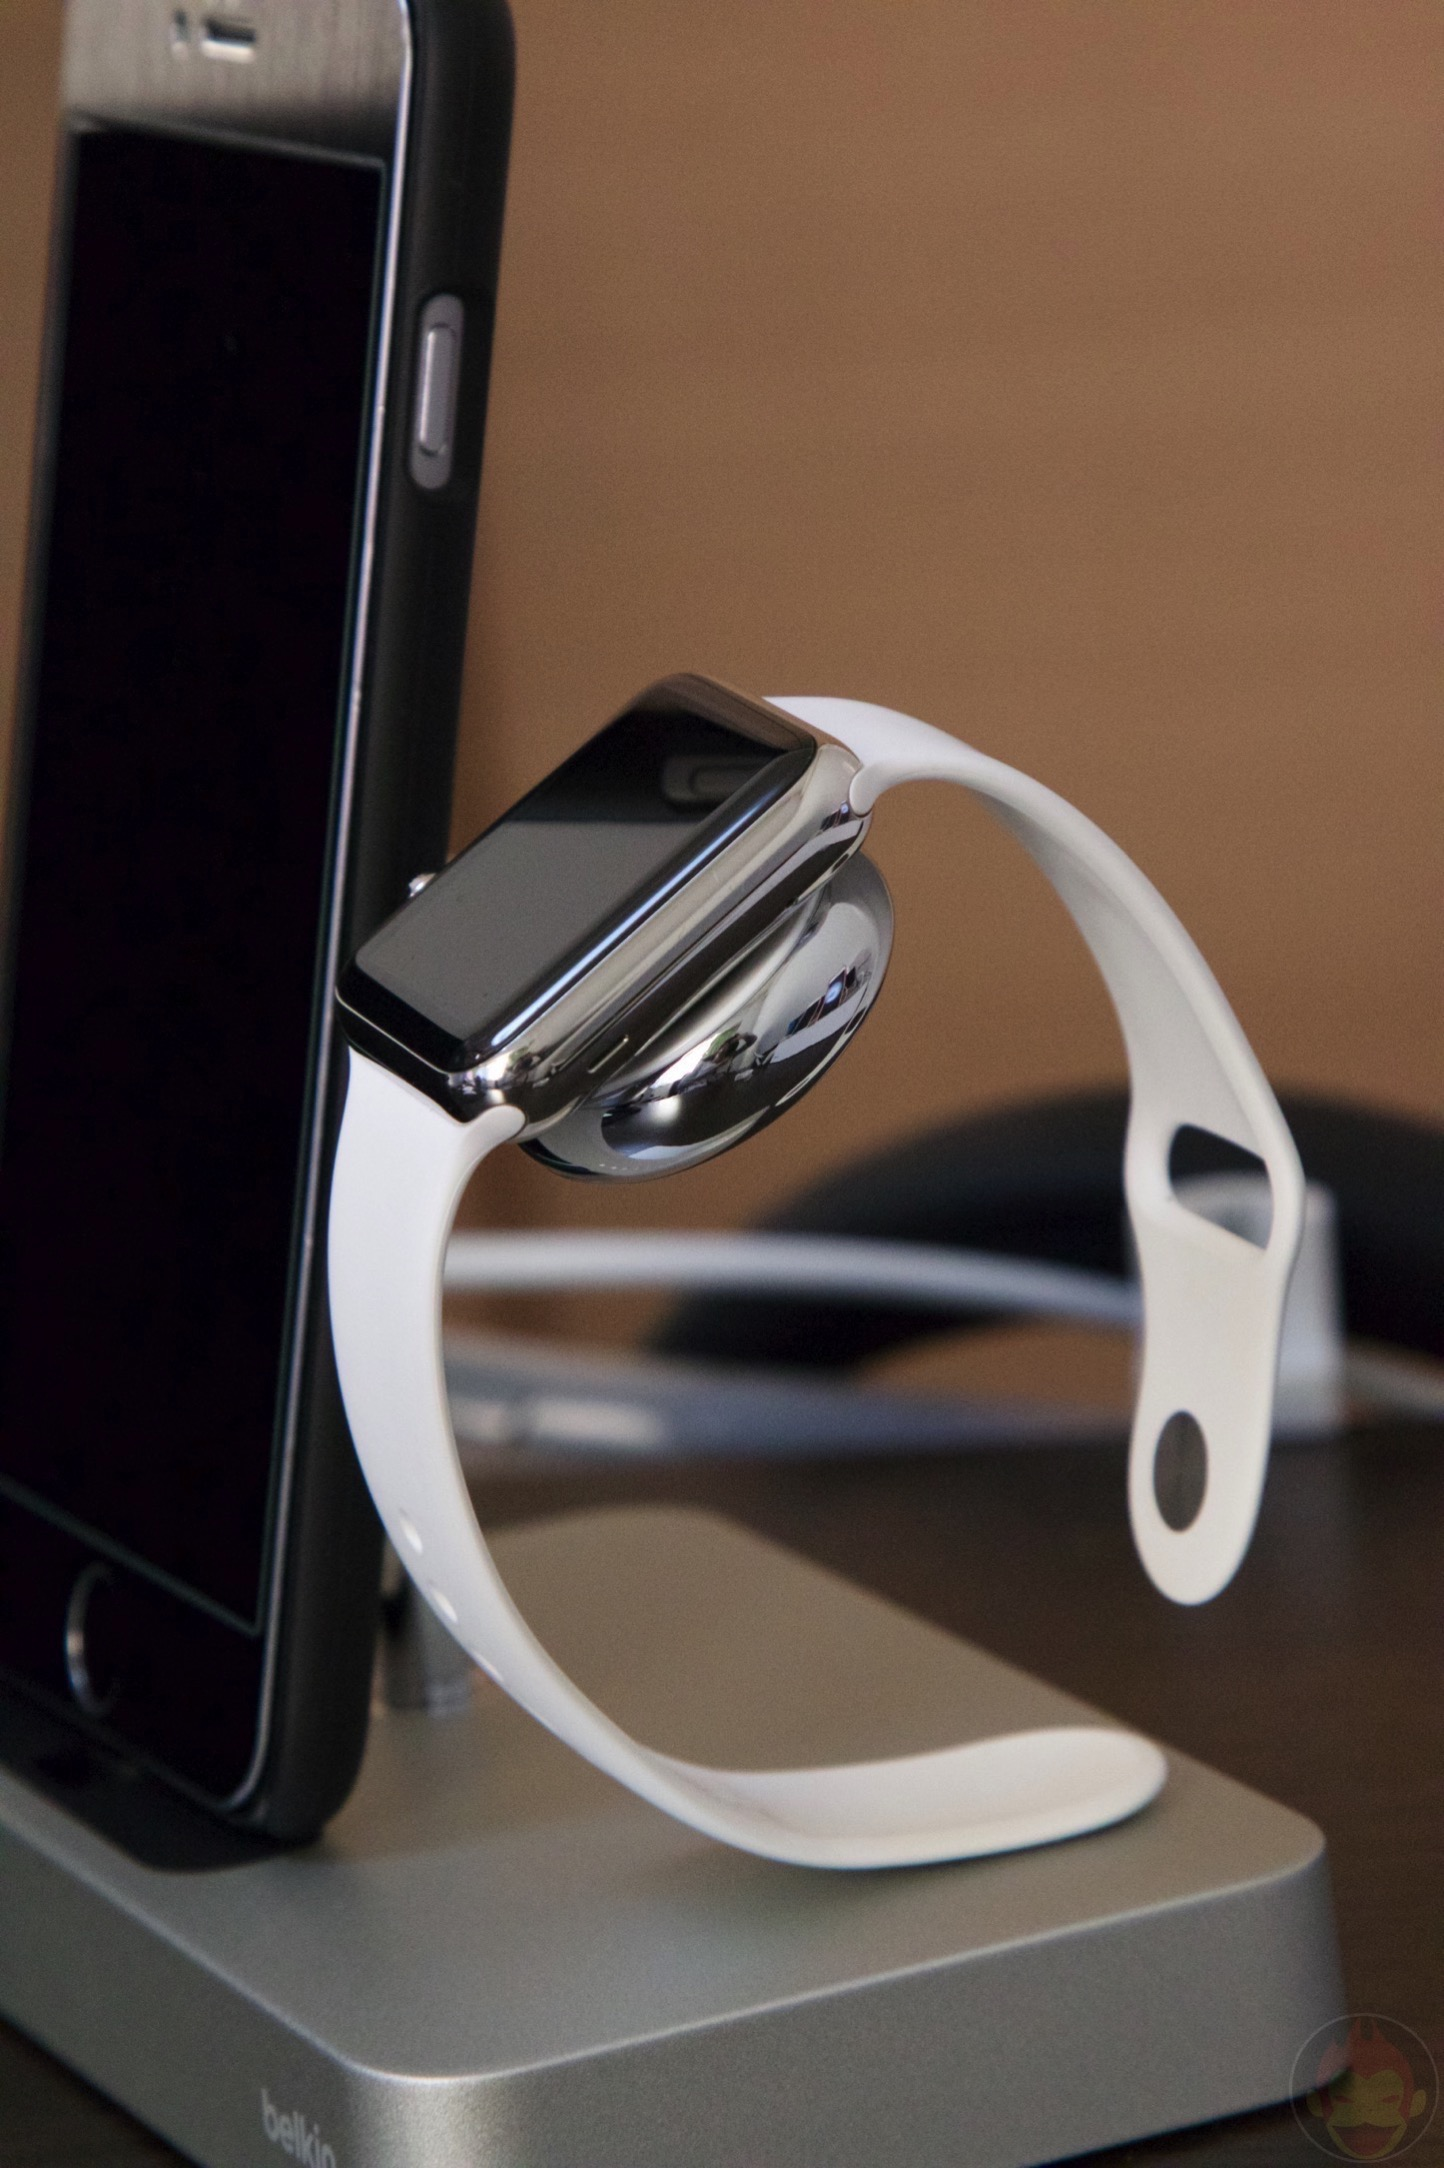 Belkin-Charge-Dock-for-iPhone-and-Apple-Watch-14.jpg